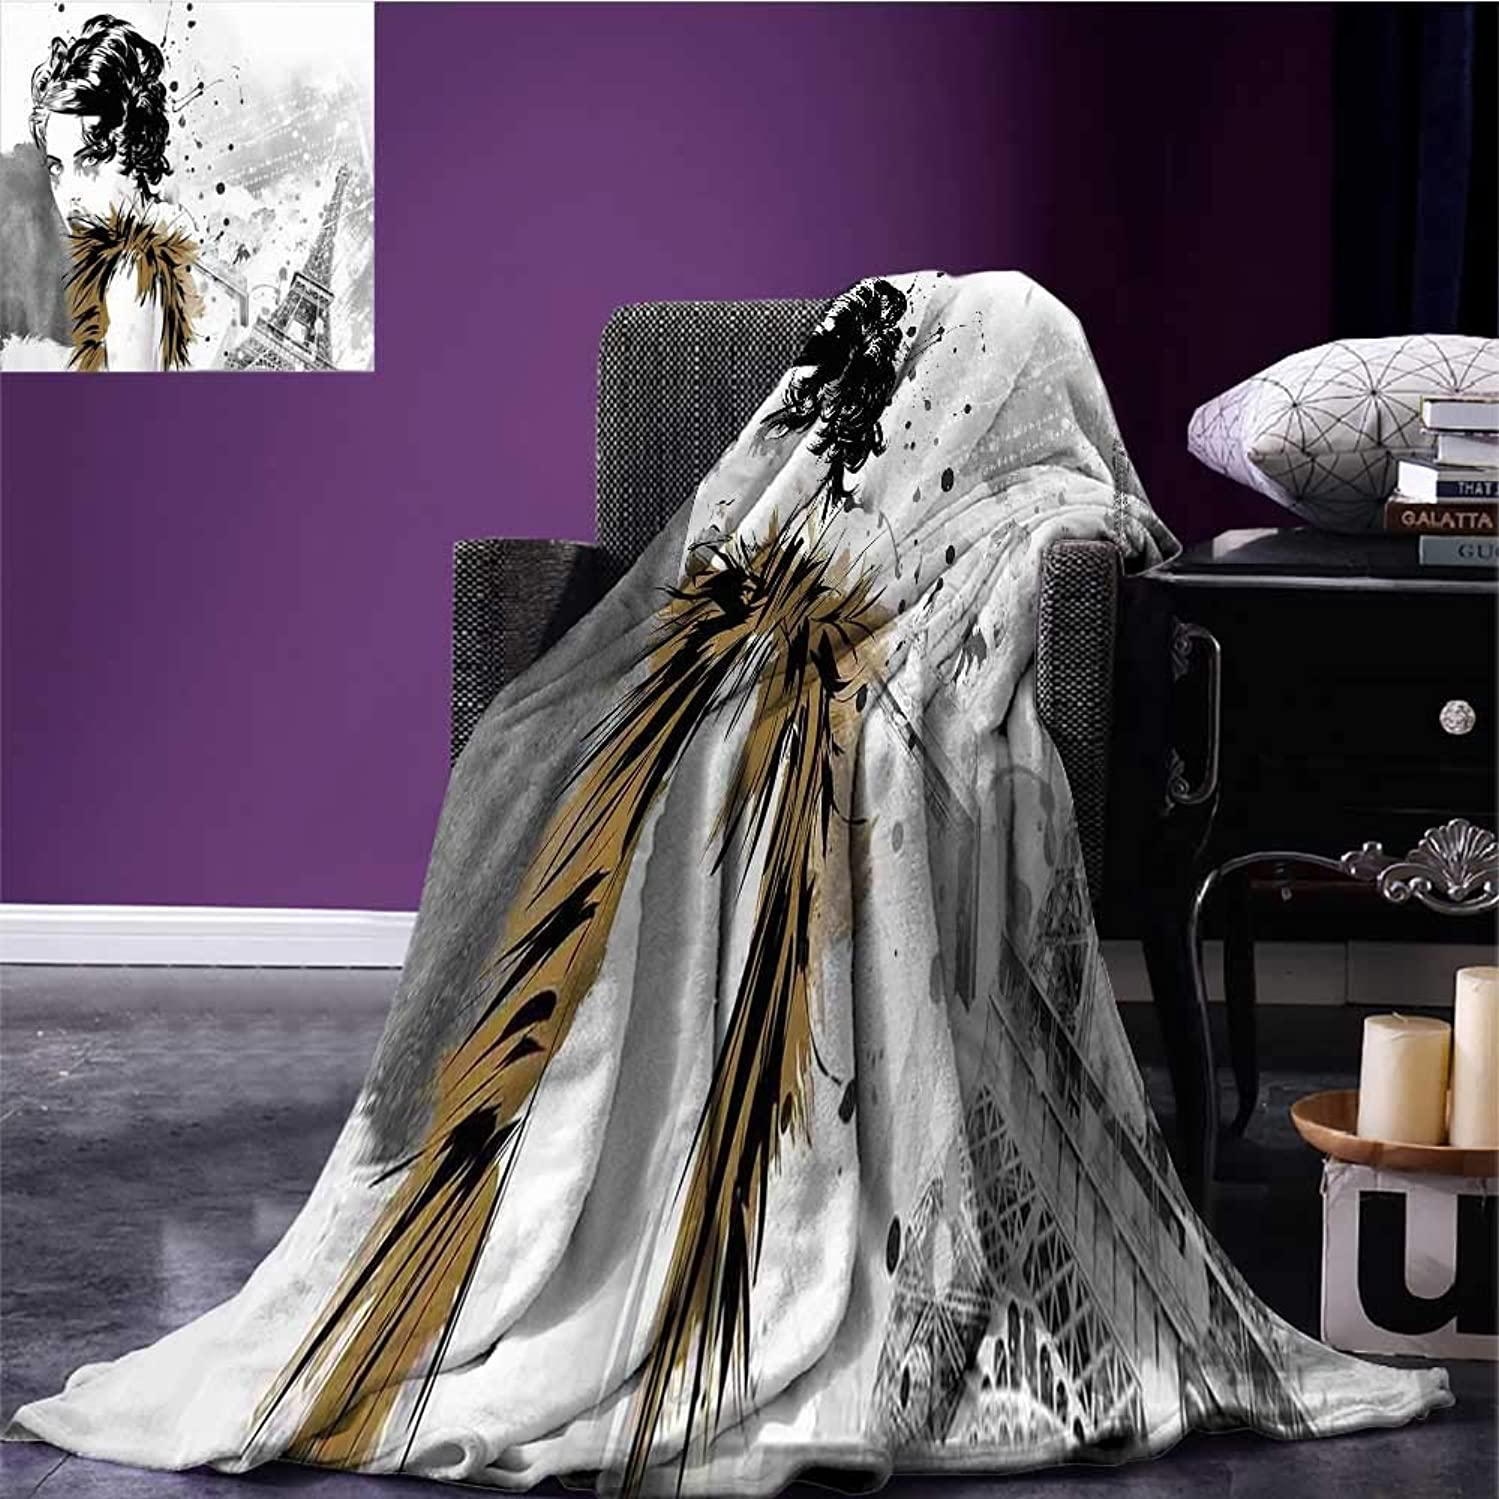 Modern Throw Blanket Posing Fashion Model Girl with Feathers and Dots Paris Eiffel Contemporary Artful Warm Blanket Grey White Bed or Couch 90